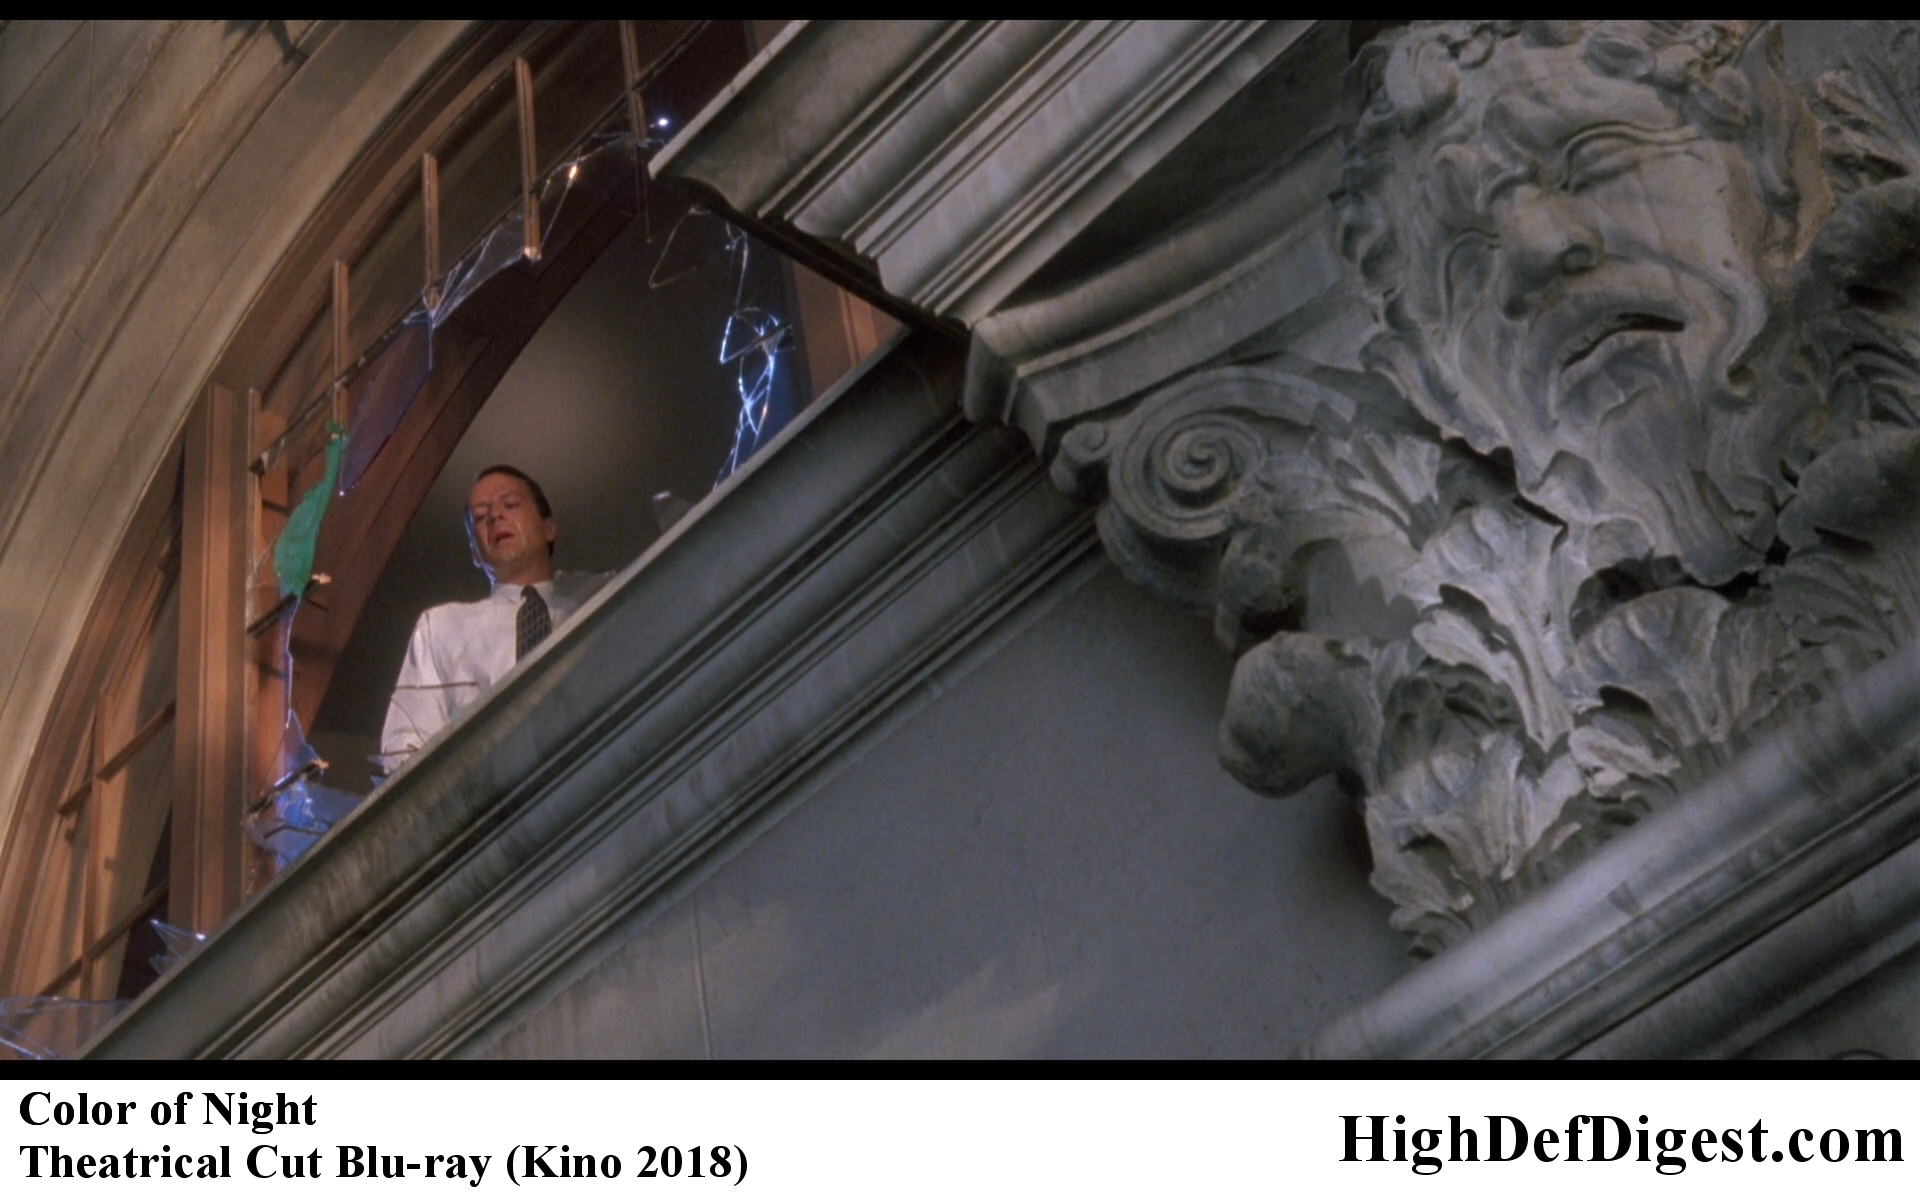 Color of Night Bruce Willis in the Window Comparison - Theatrical Cut